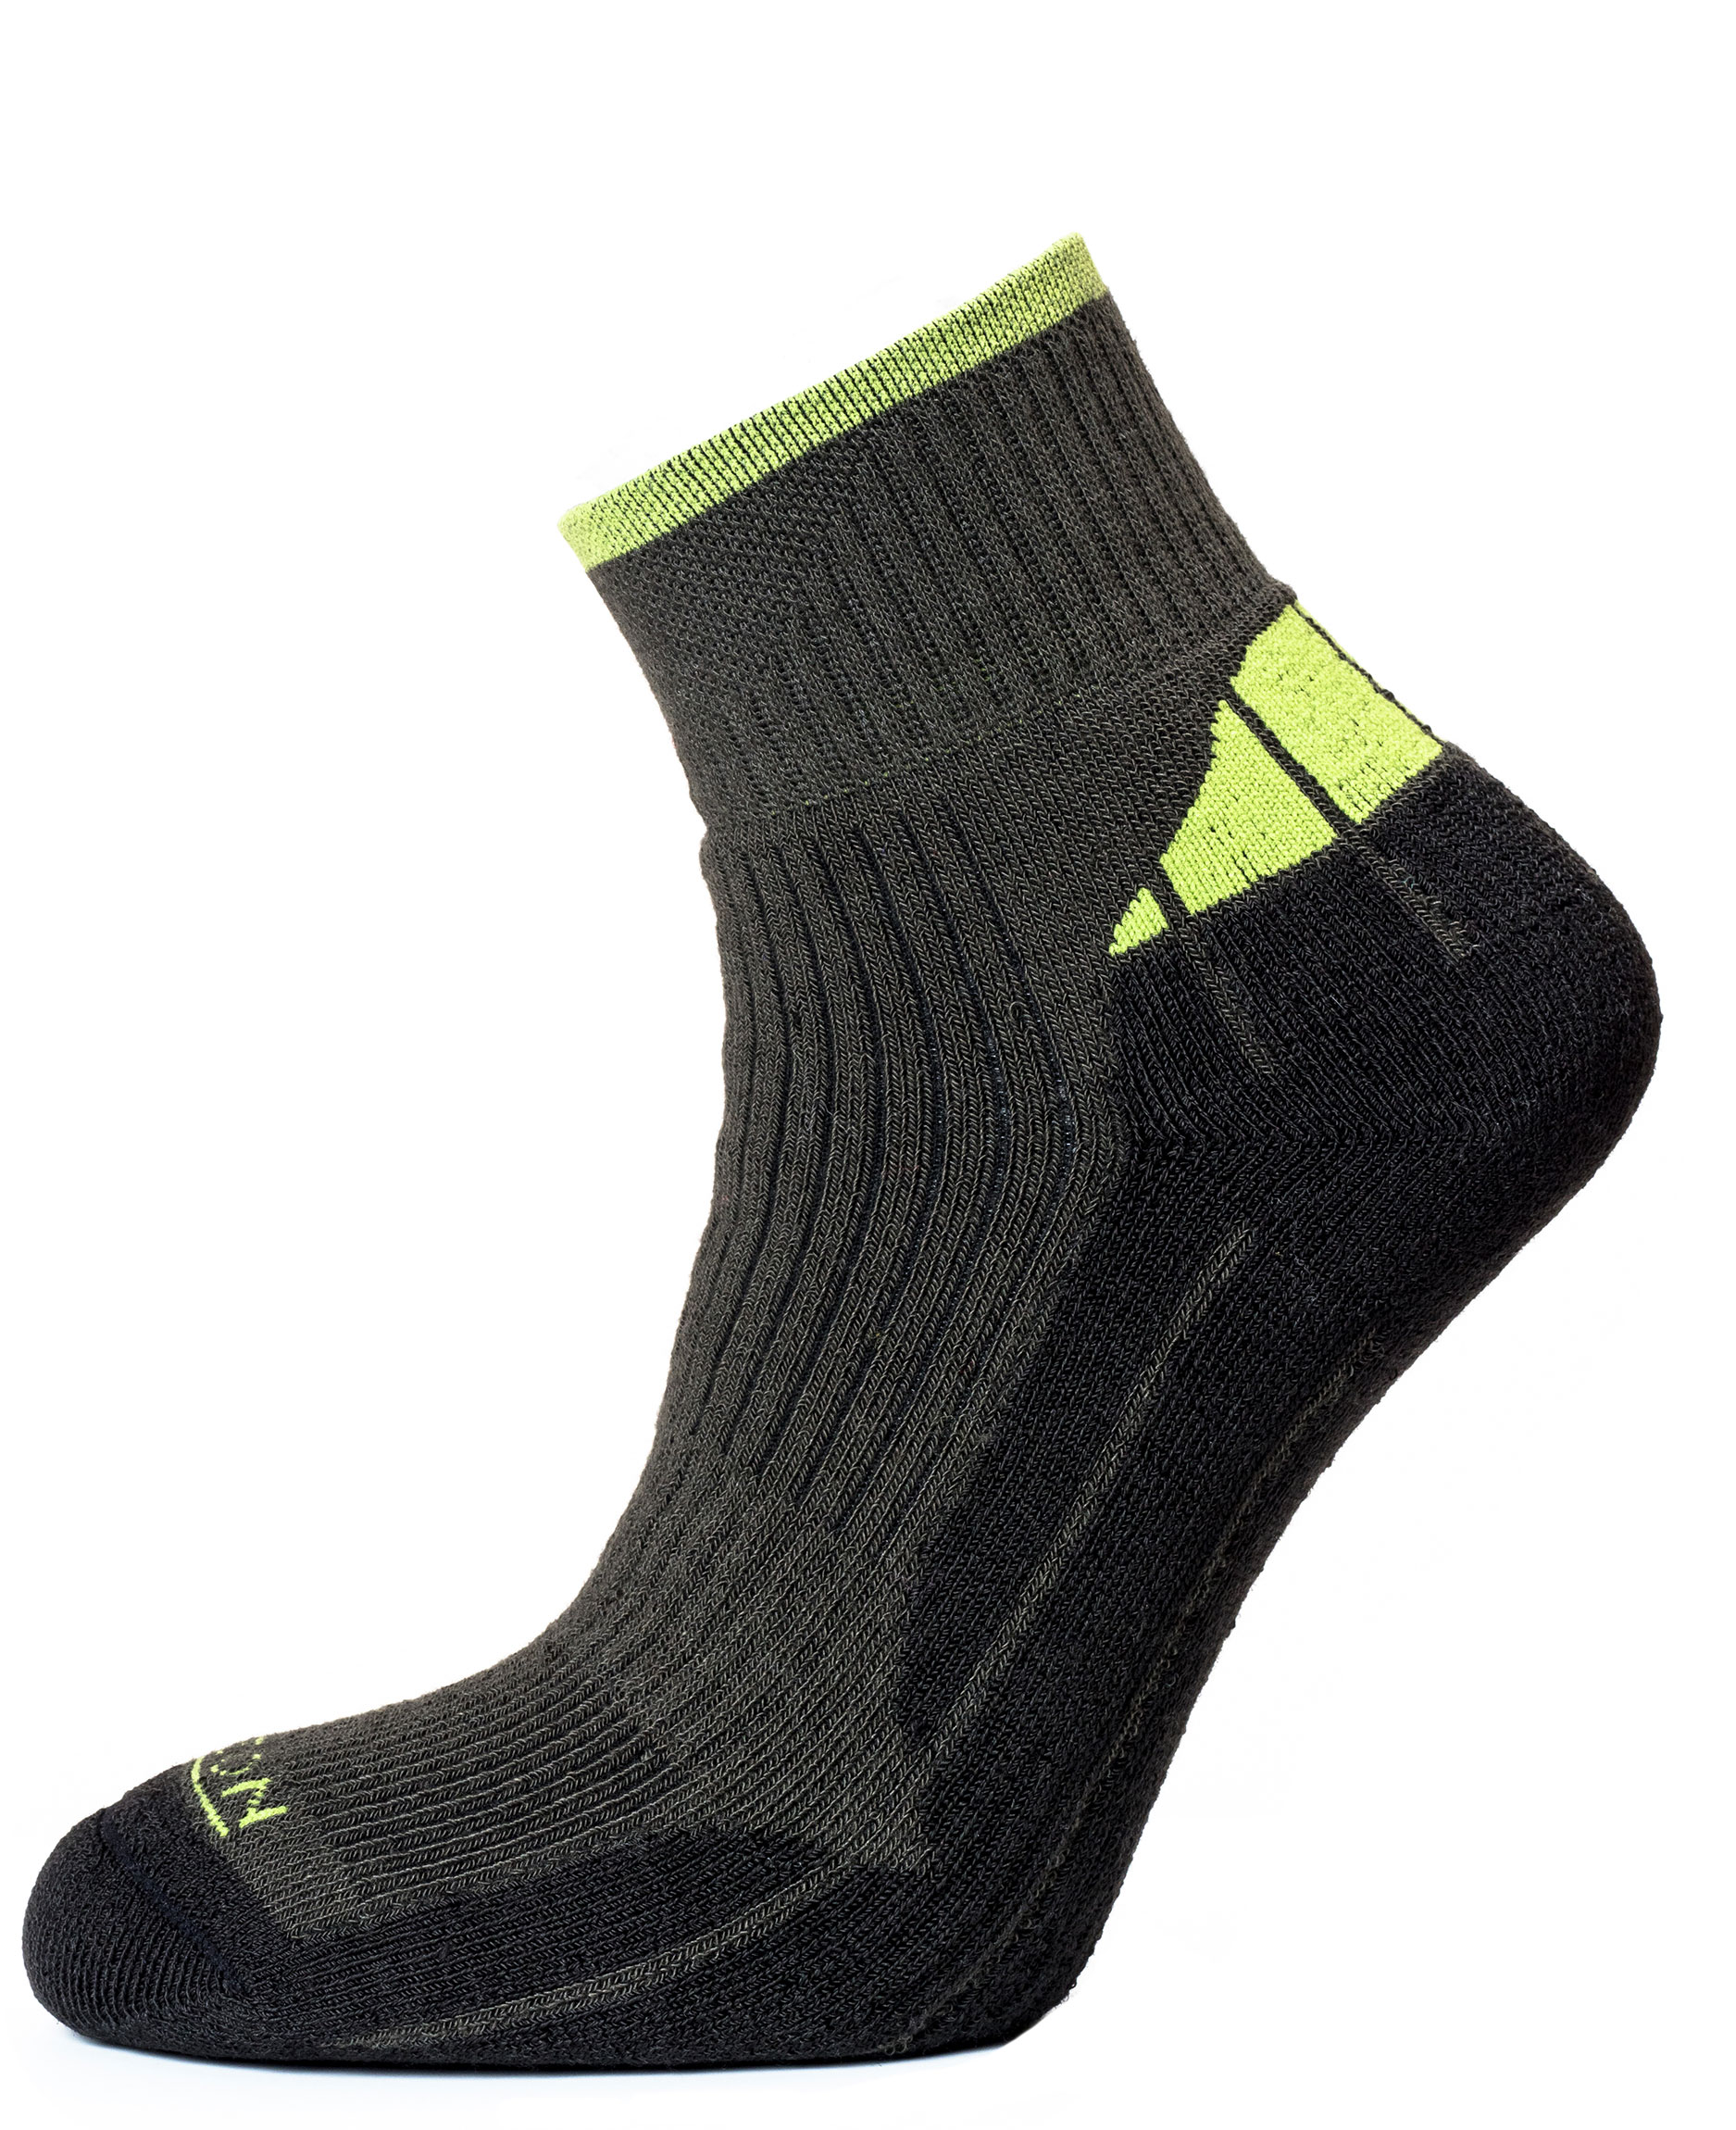 Coolmax Quarter Charcoal Marl/Lime